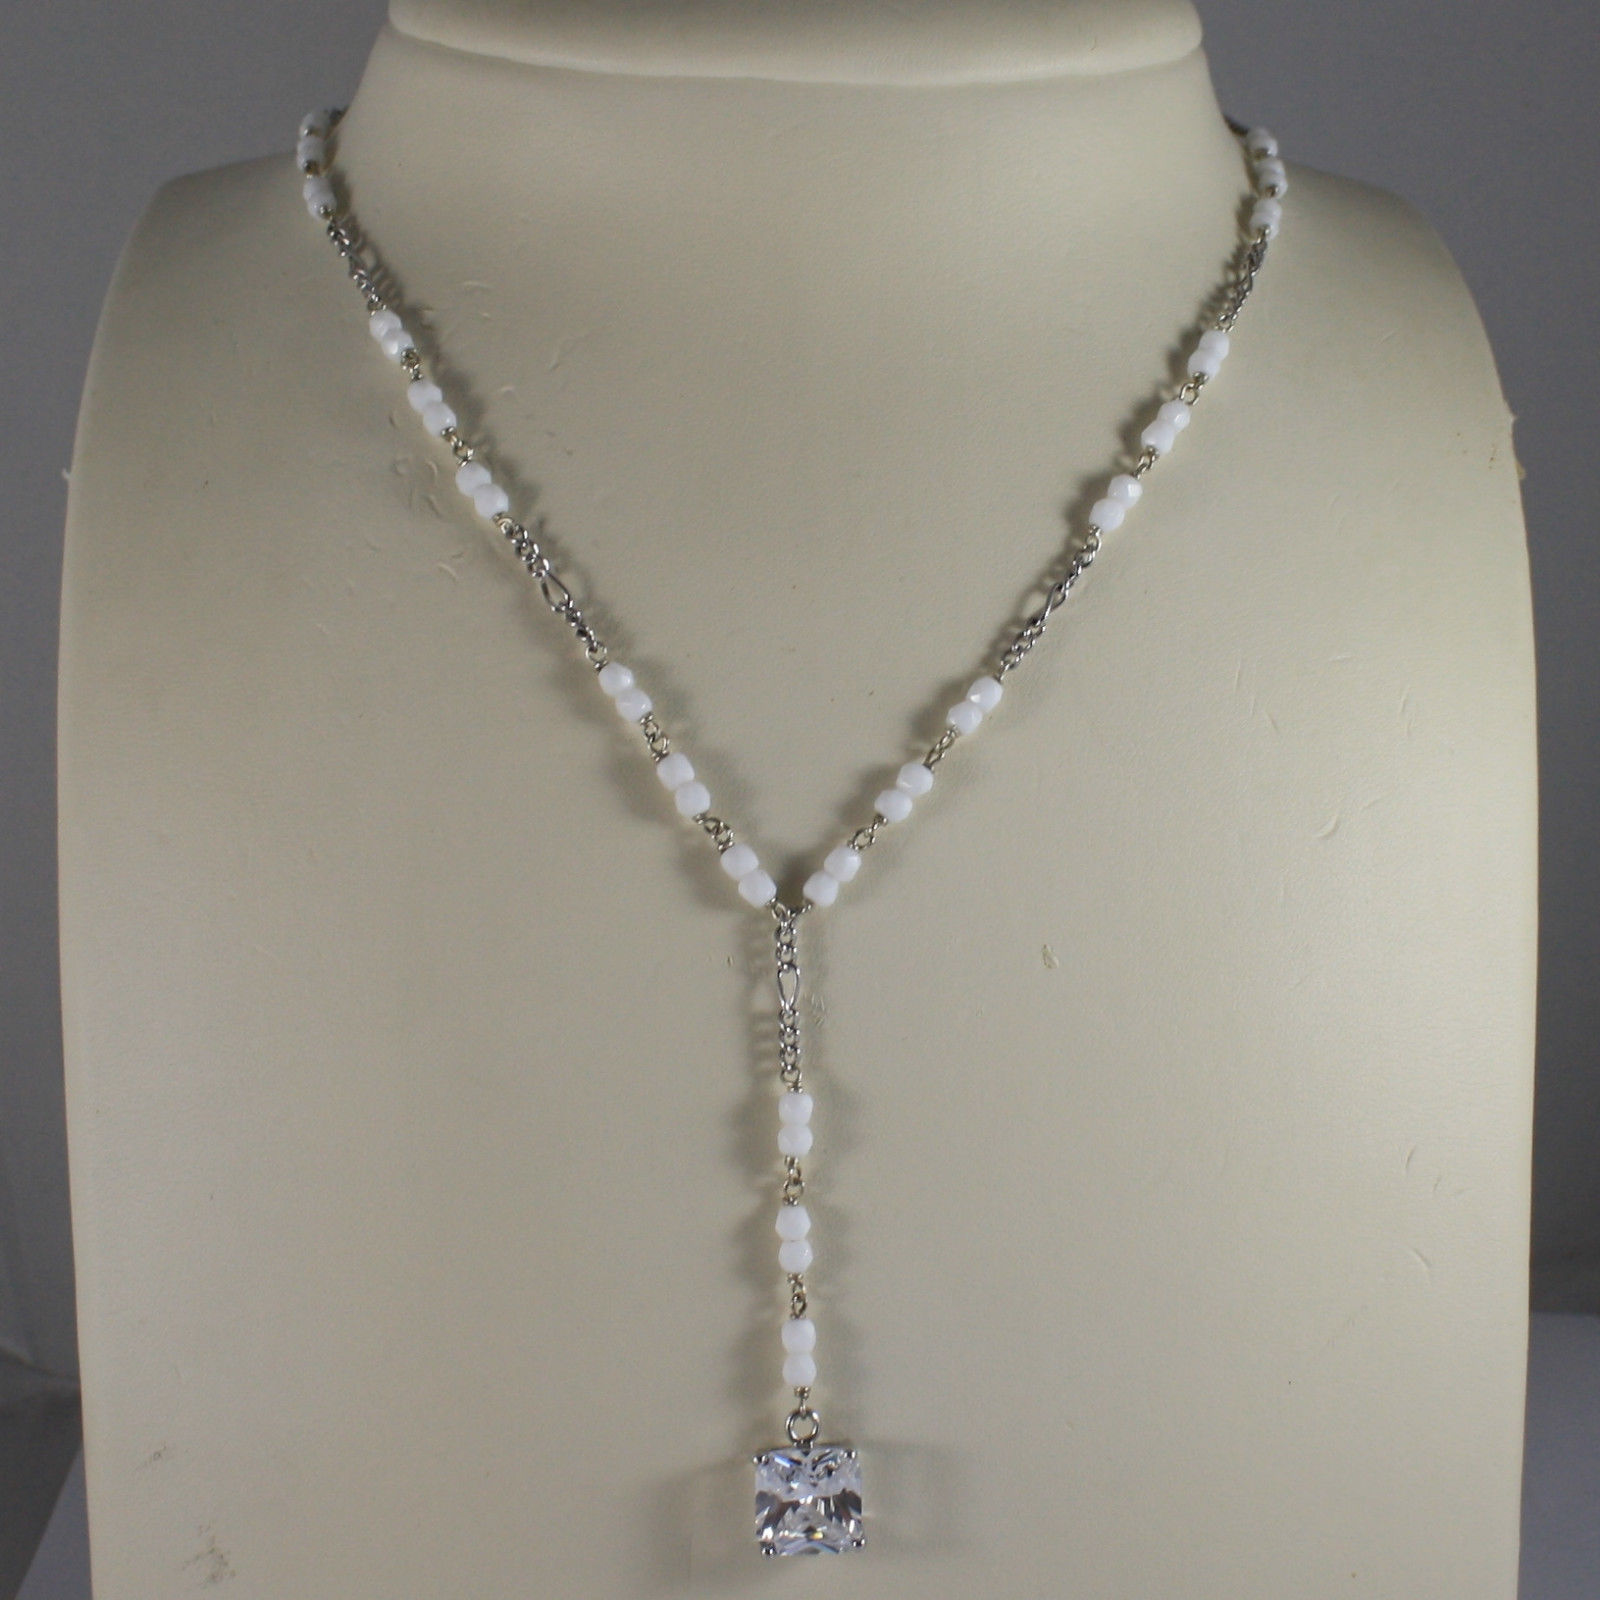 .925 SILVER RHODIUM NECKLACE WITH WHITE AGATE AND TRANSPARENT CRYSTAL PENDANT